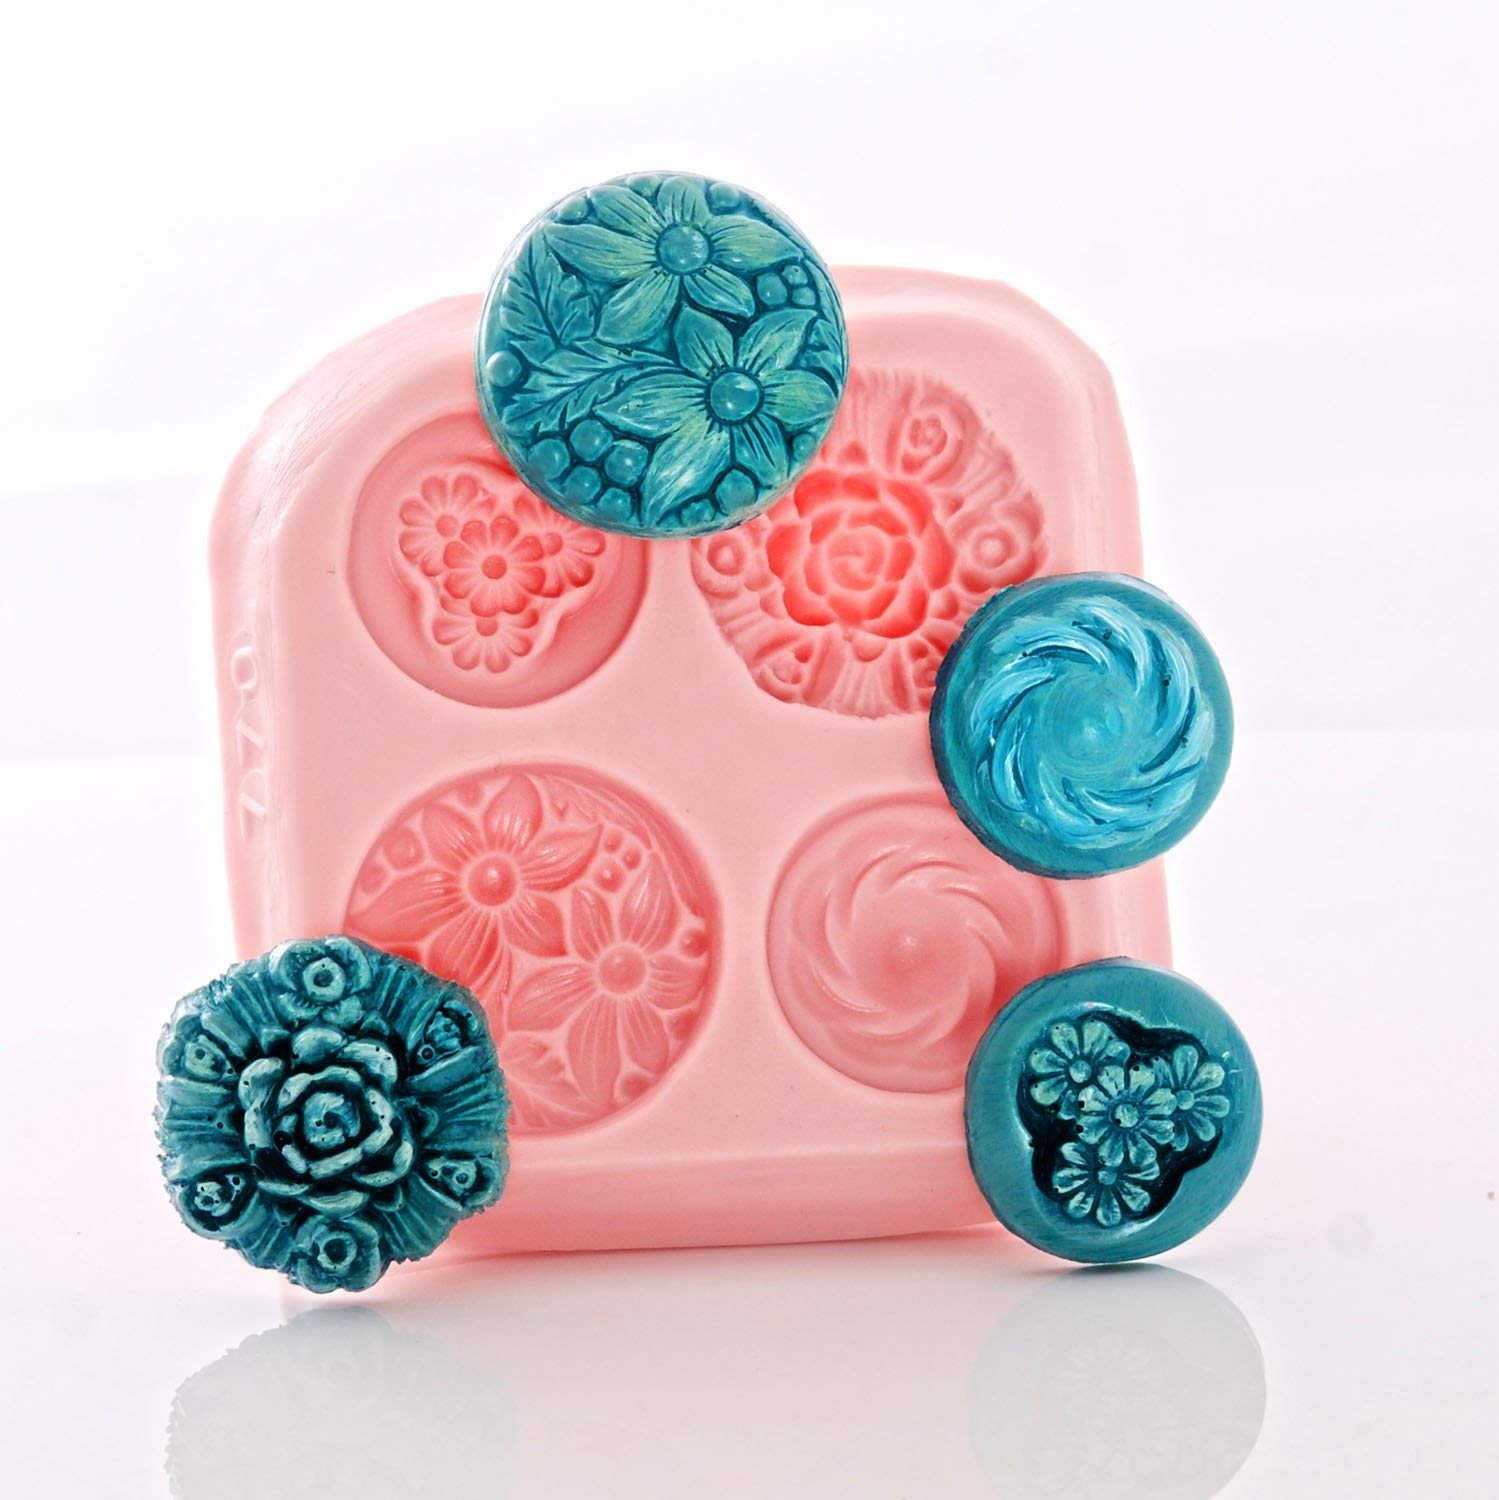 Flower Vintage Style Button Silicone Mold Fondant Chocolate Mint Resin Polymer Clay Jewelry Craft Mold